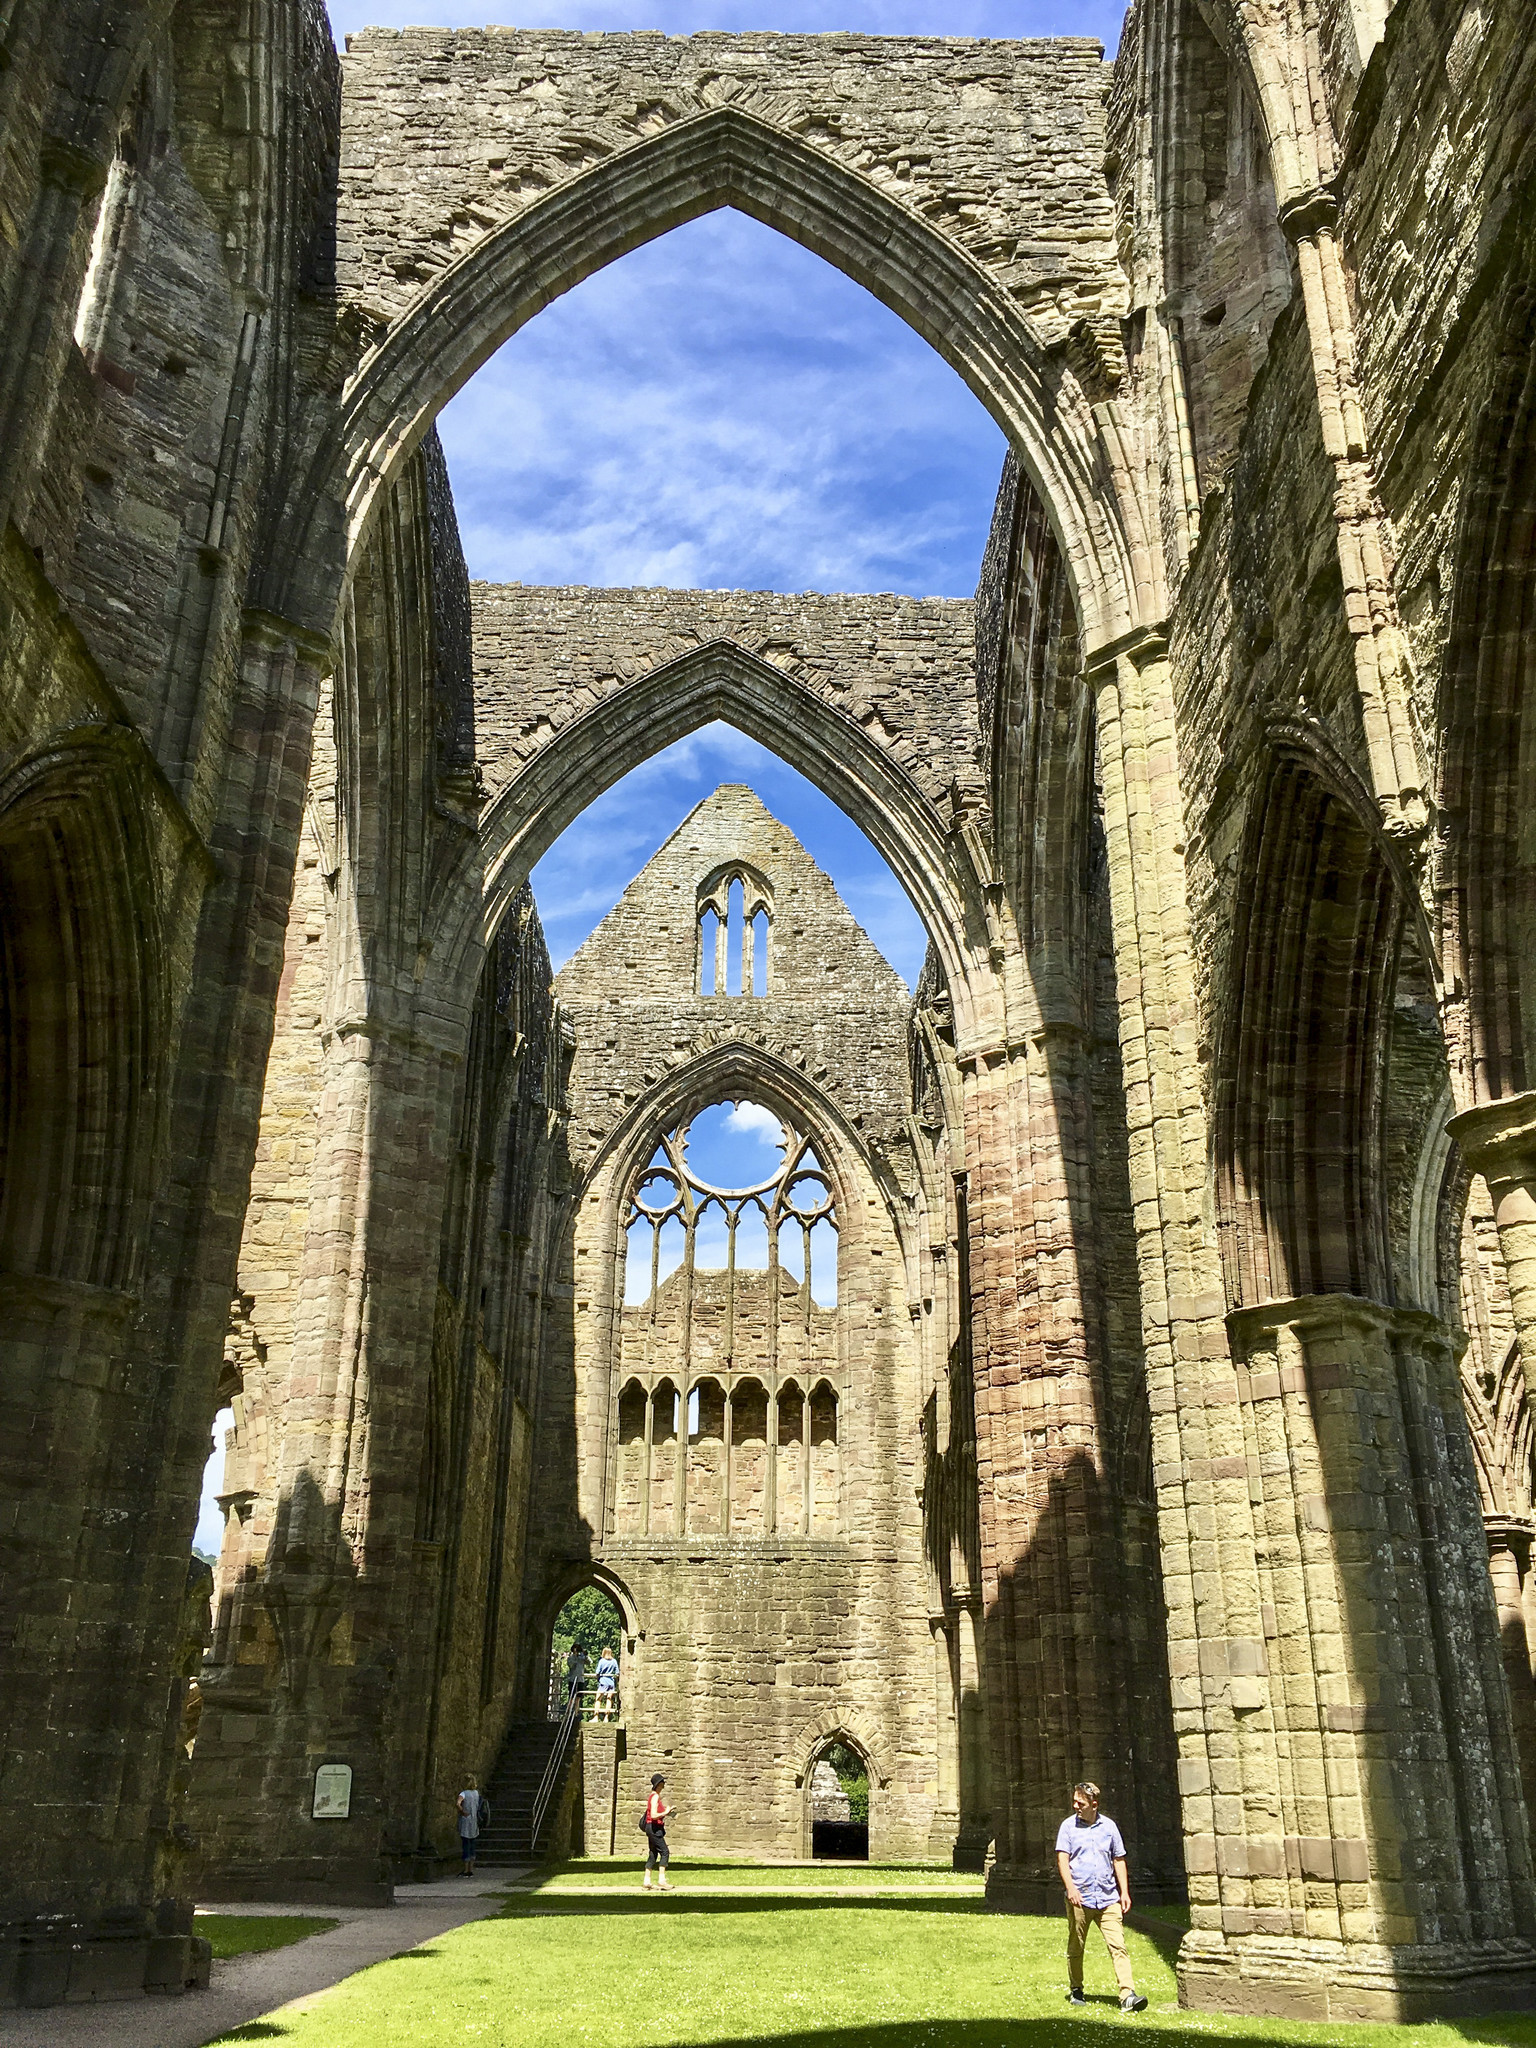 Tintern Abbey, one of Wales' greatest monastic ruins, was founded by the lord of nearby Chepstow Castle in 1131 and completed around 1300. It stands today much as it did then, except for the lack of a roof and windows.